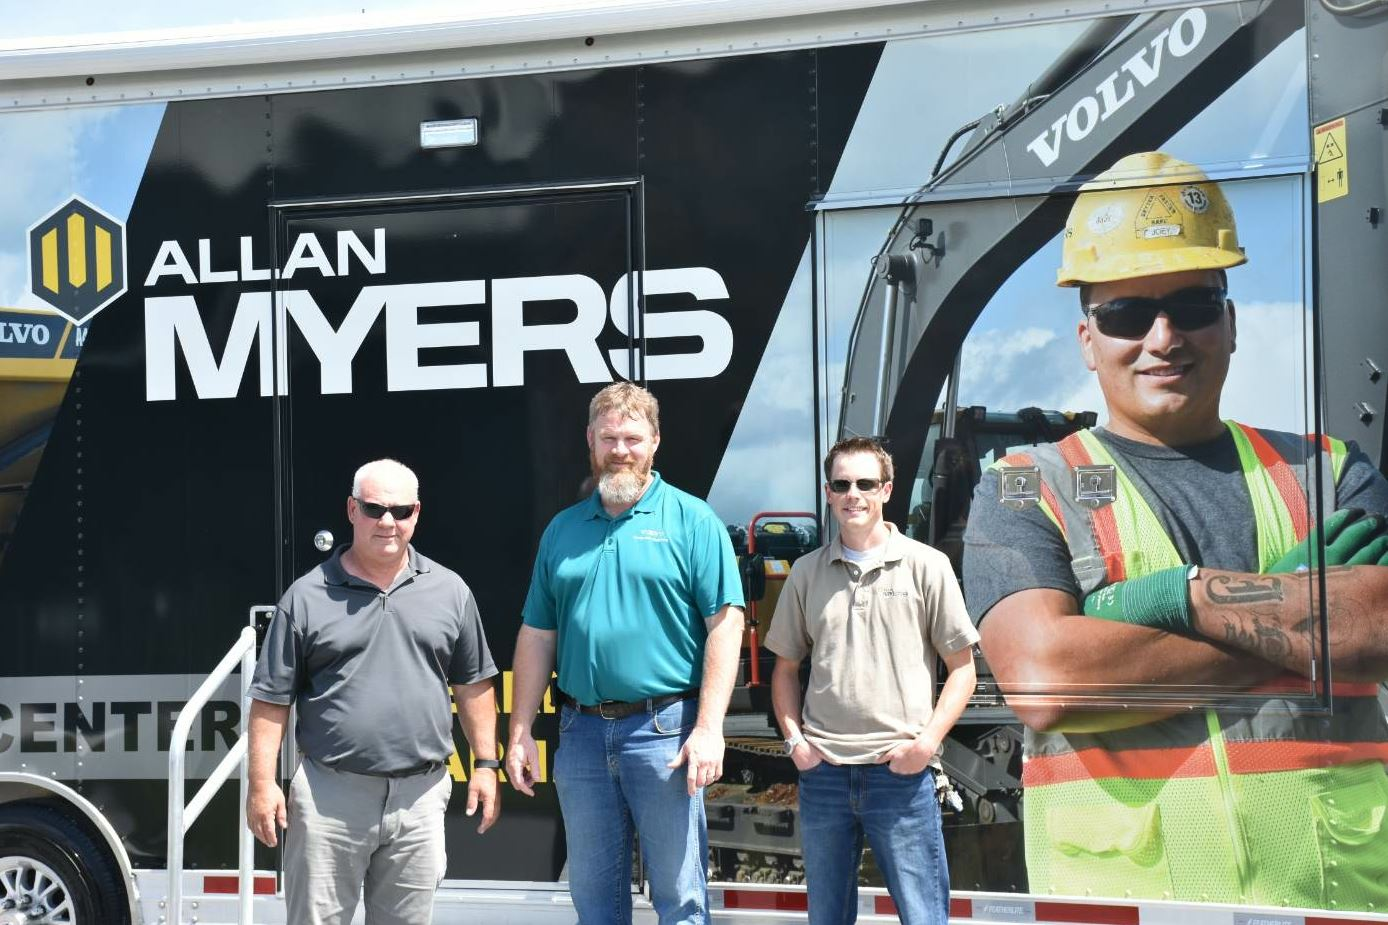 From left: Bill McGowan of Allan Myers, Danny Freeman of Volvo CE, and Andrew Hoffman of Allan Myers display the new Myers Mobile Training Center, which is a fundamental part of the new Stepping Up program at the company.